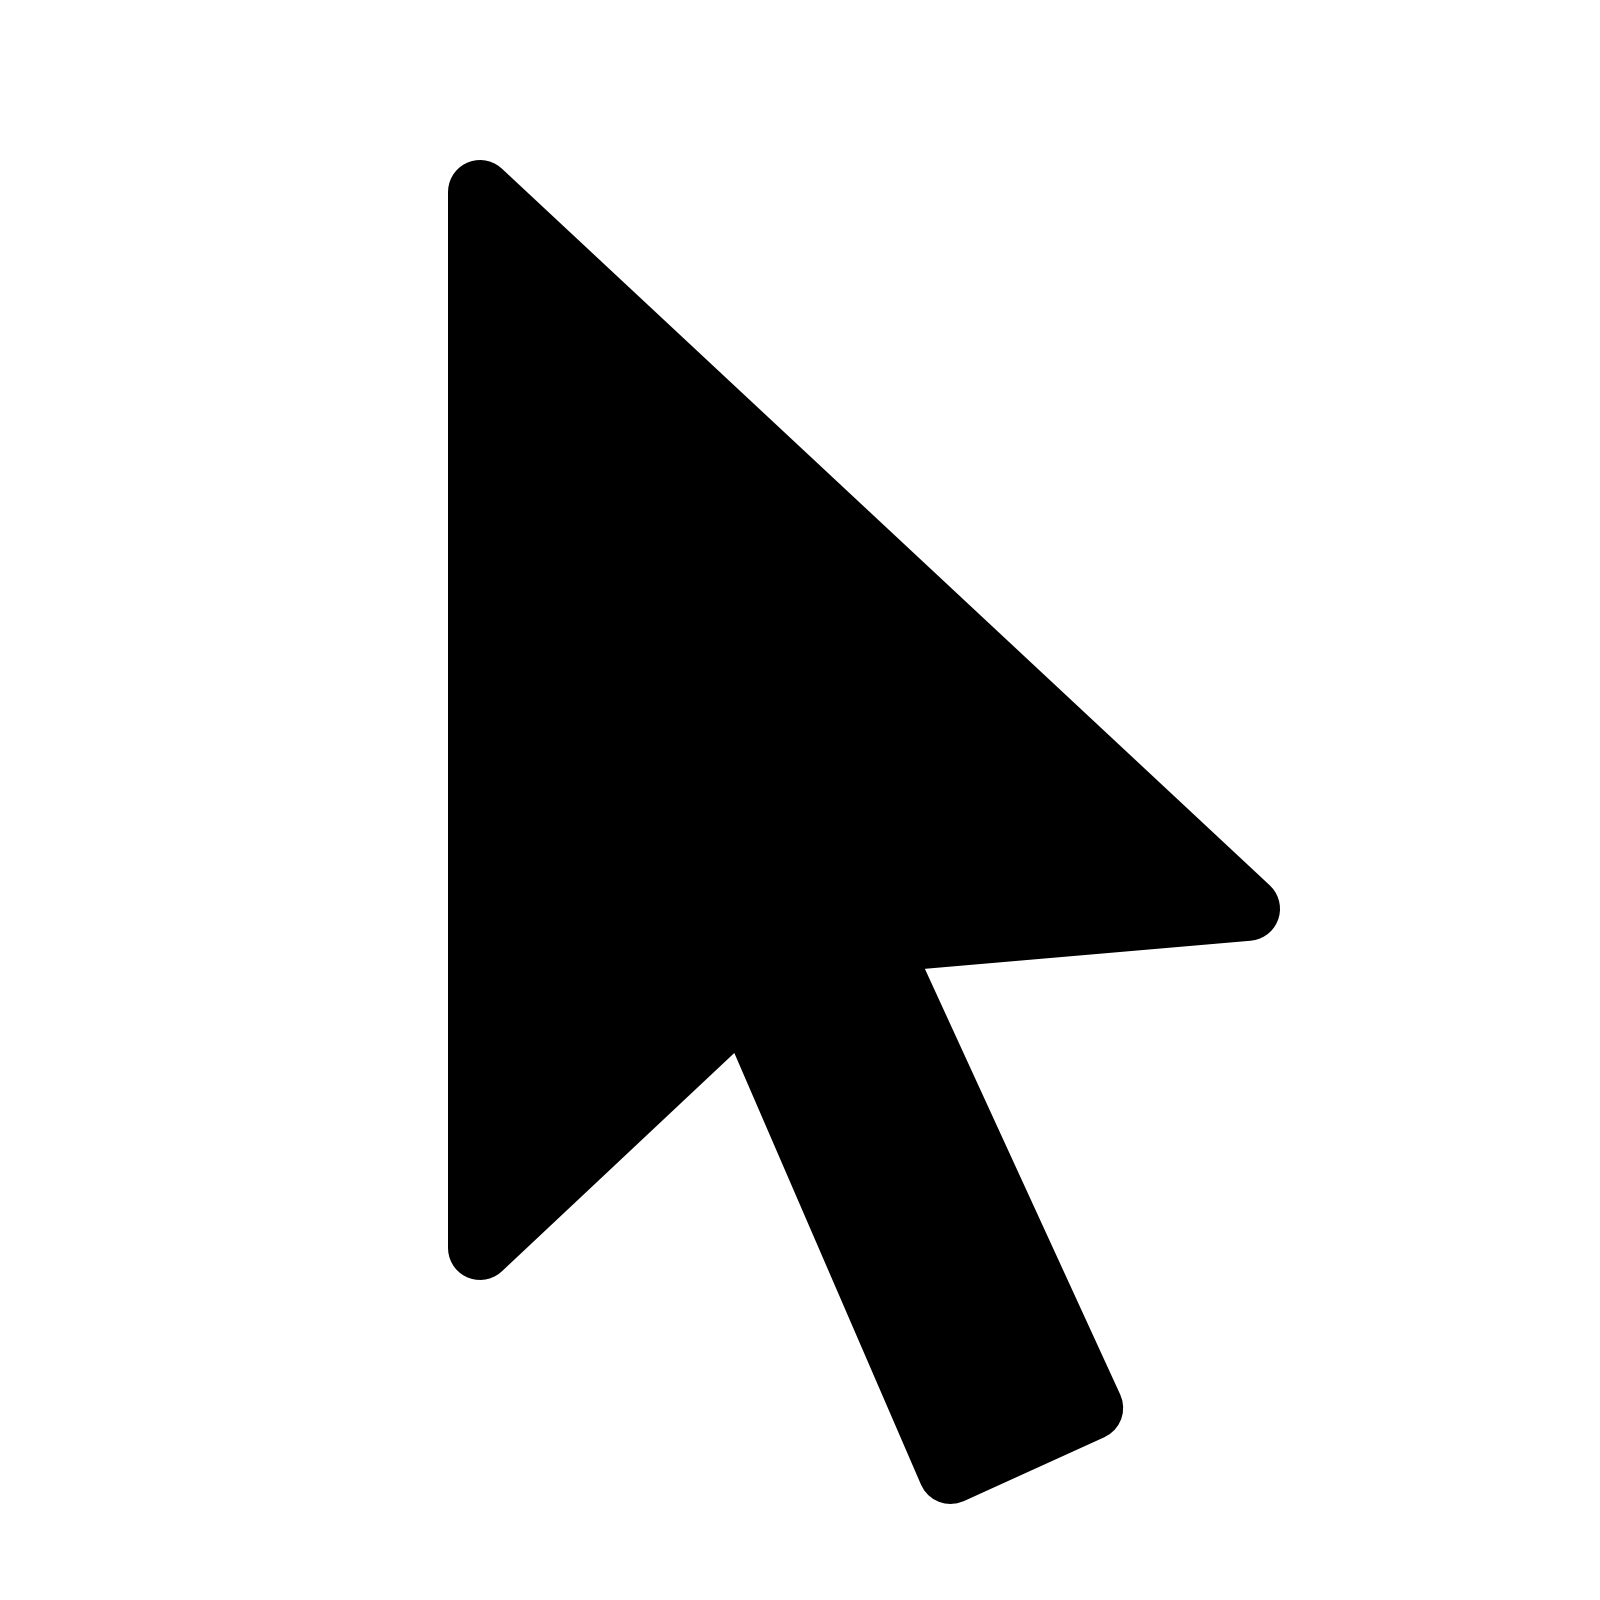 Computer mouse Pointer Cursor Window Icon.